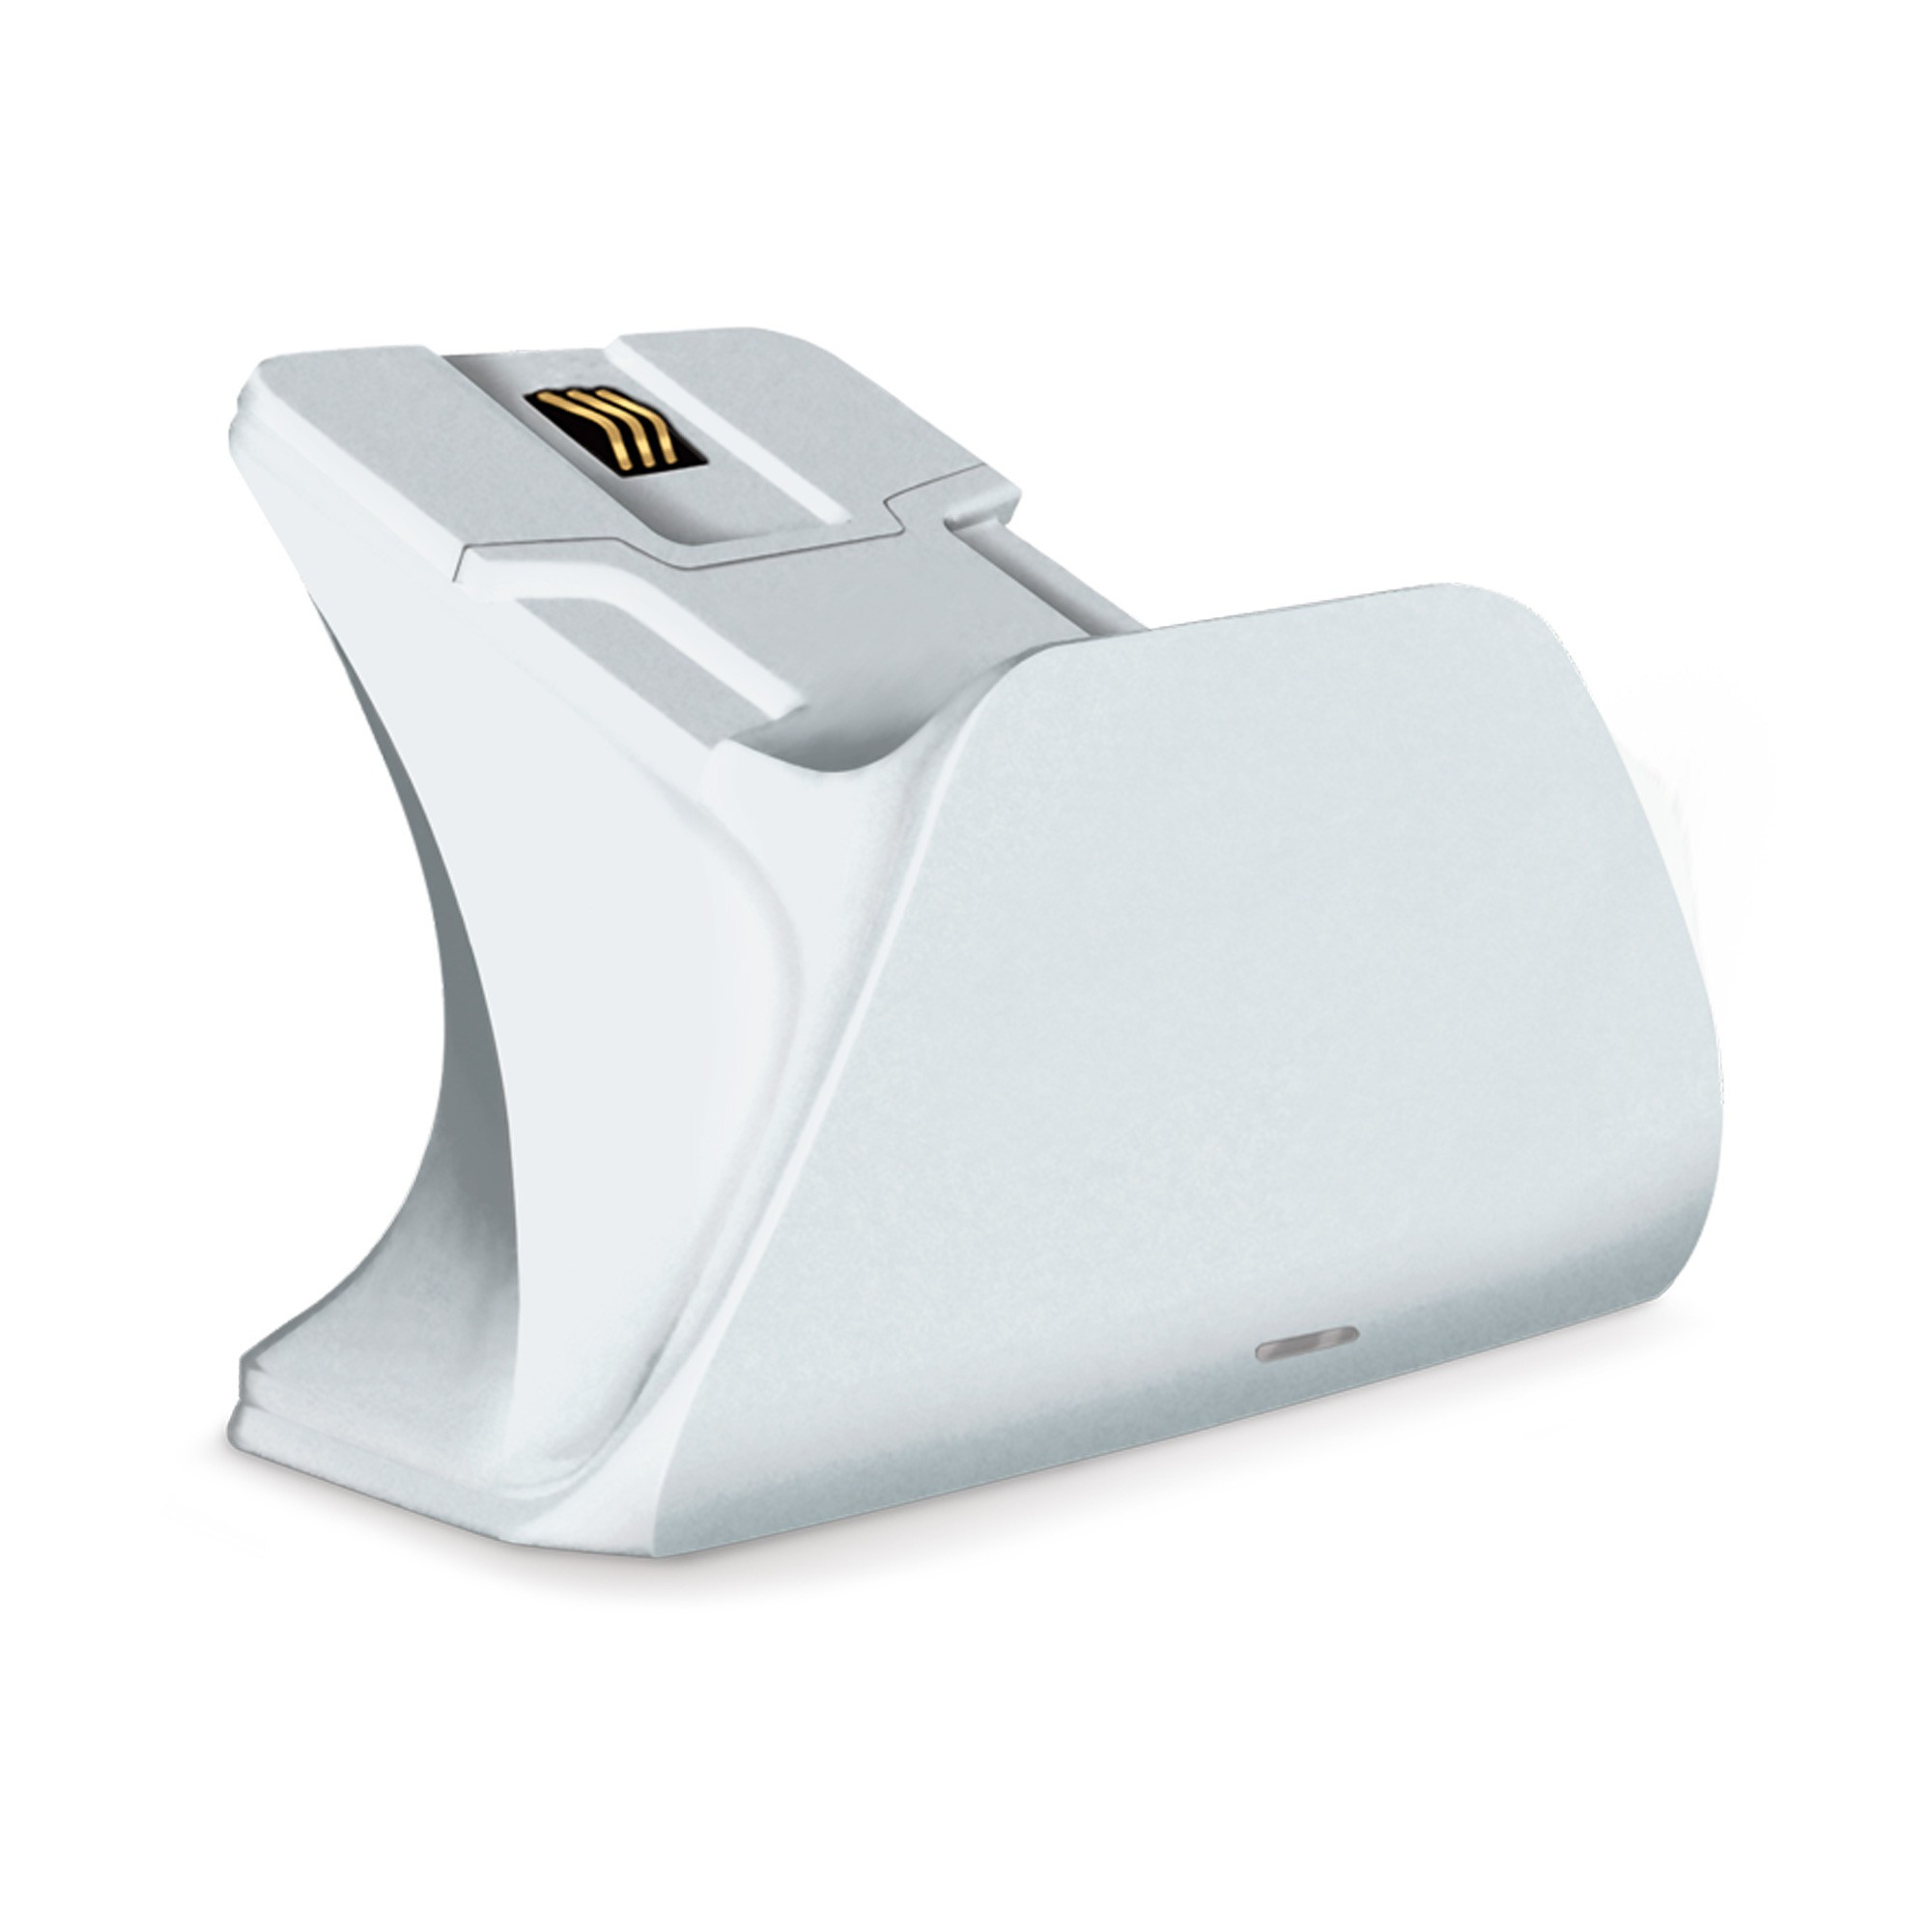 Robot White Charging Stand- Image 1